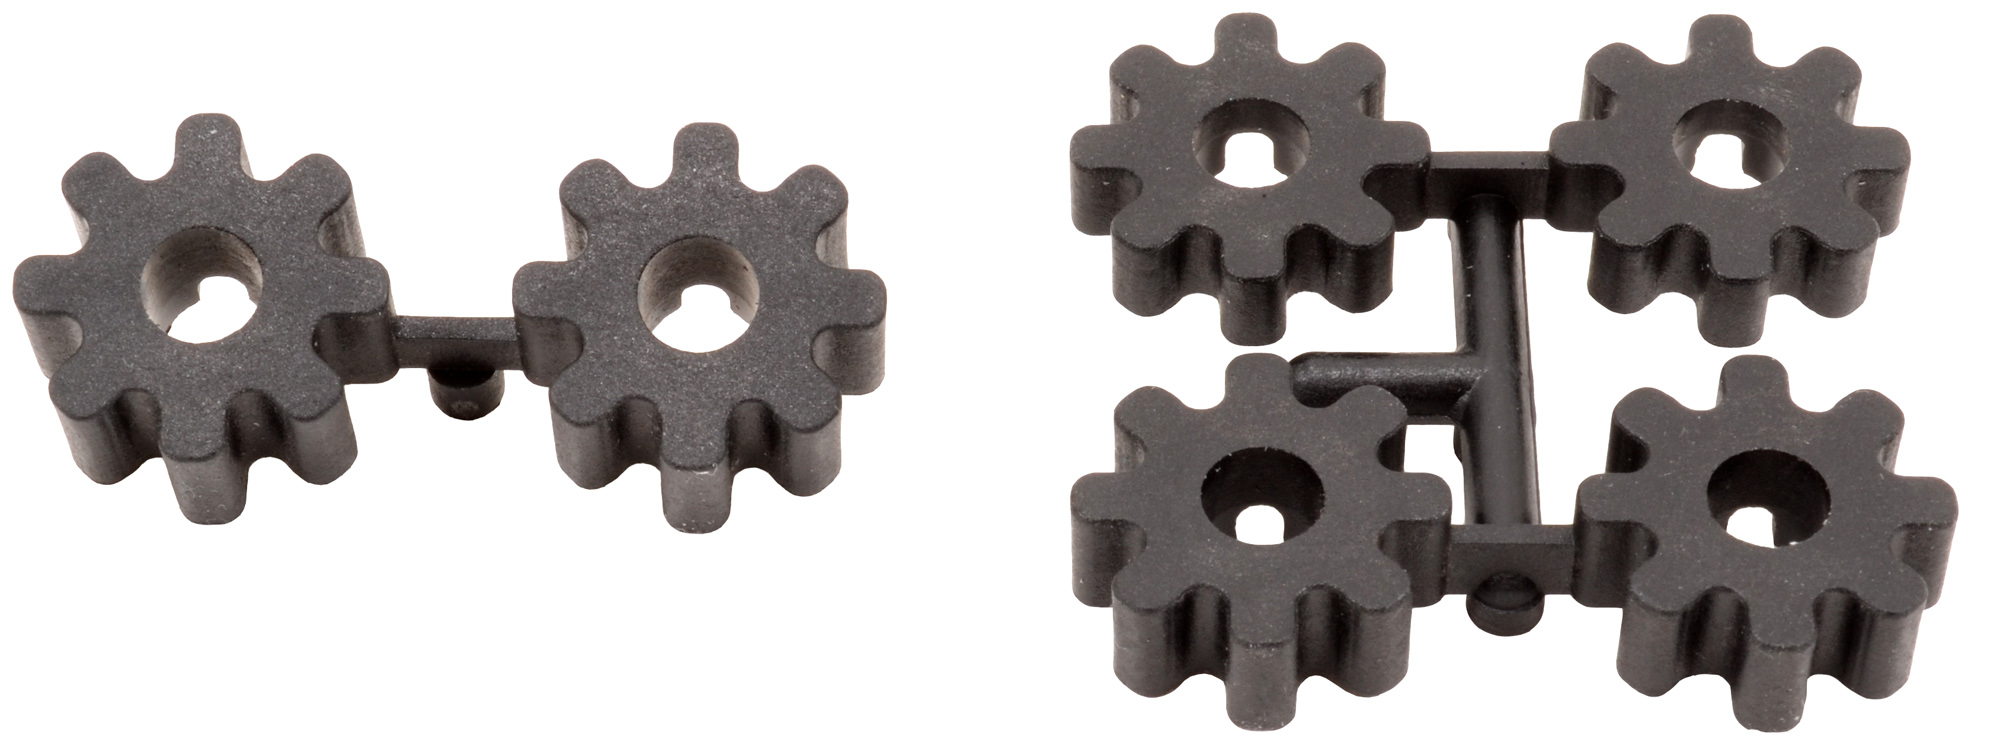 Replacement Adapters Replacement Spline Drive Adapters For Rpm Wheels Rpm R C